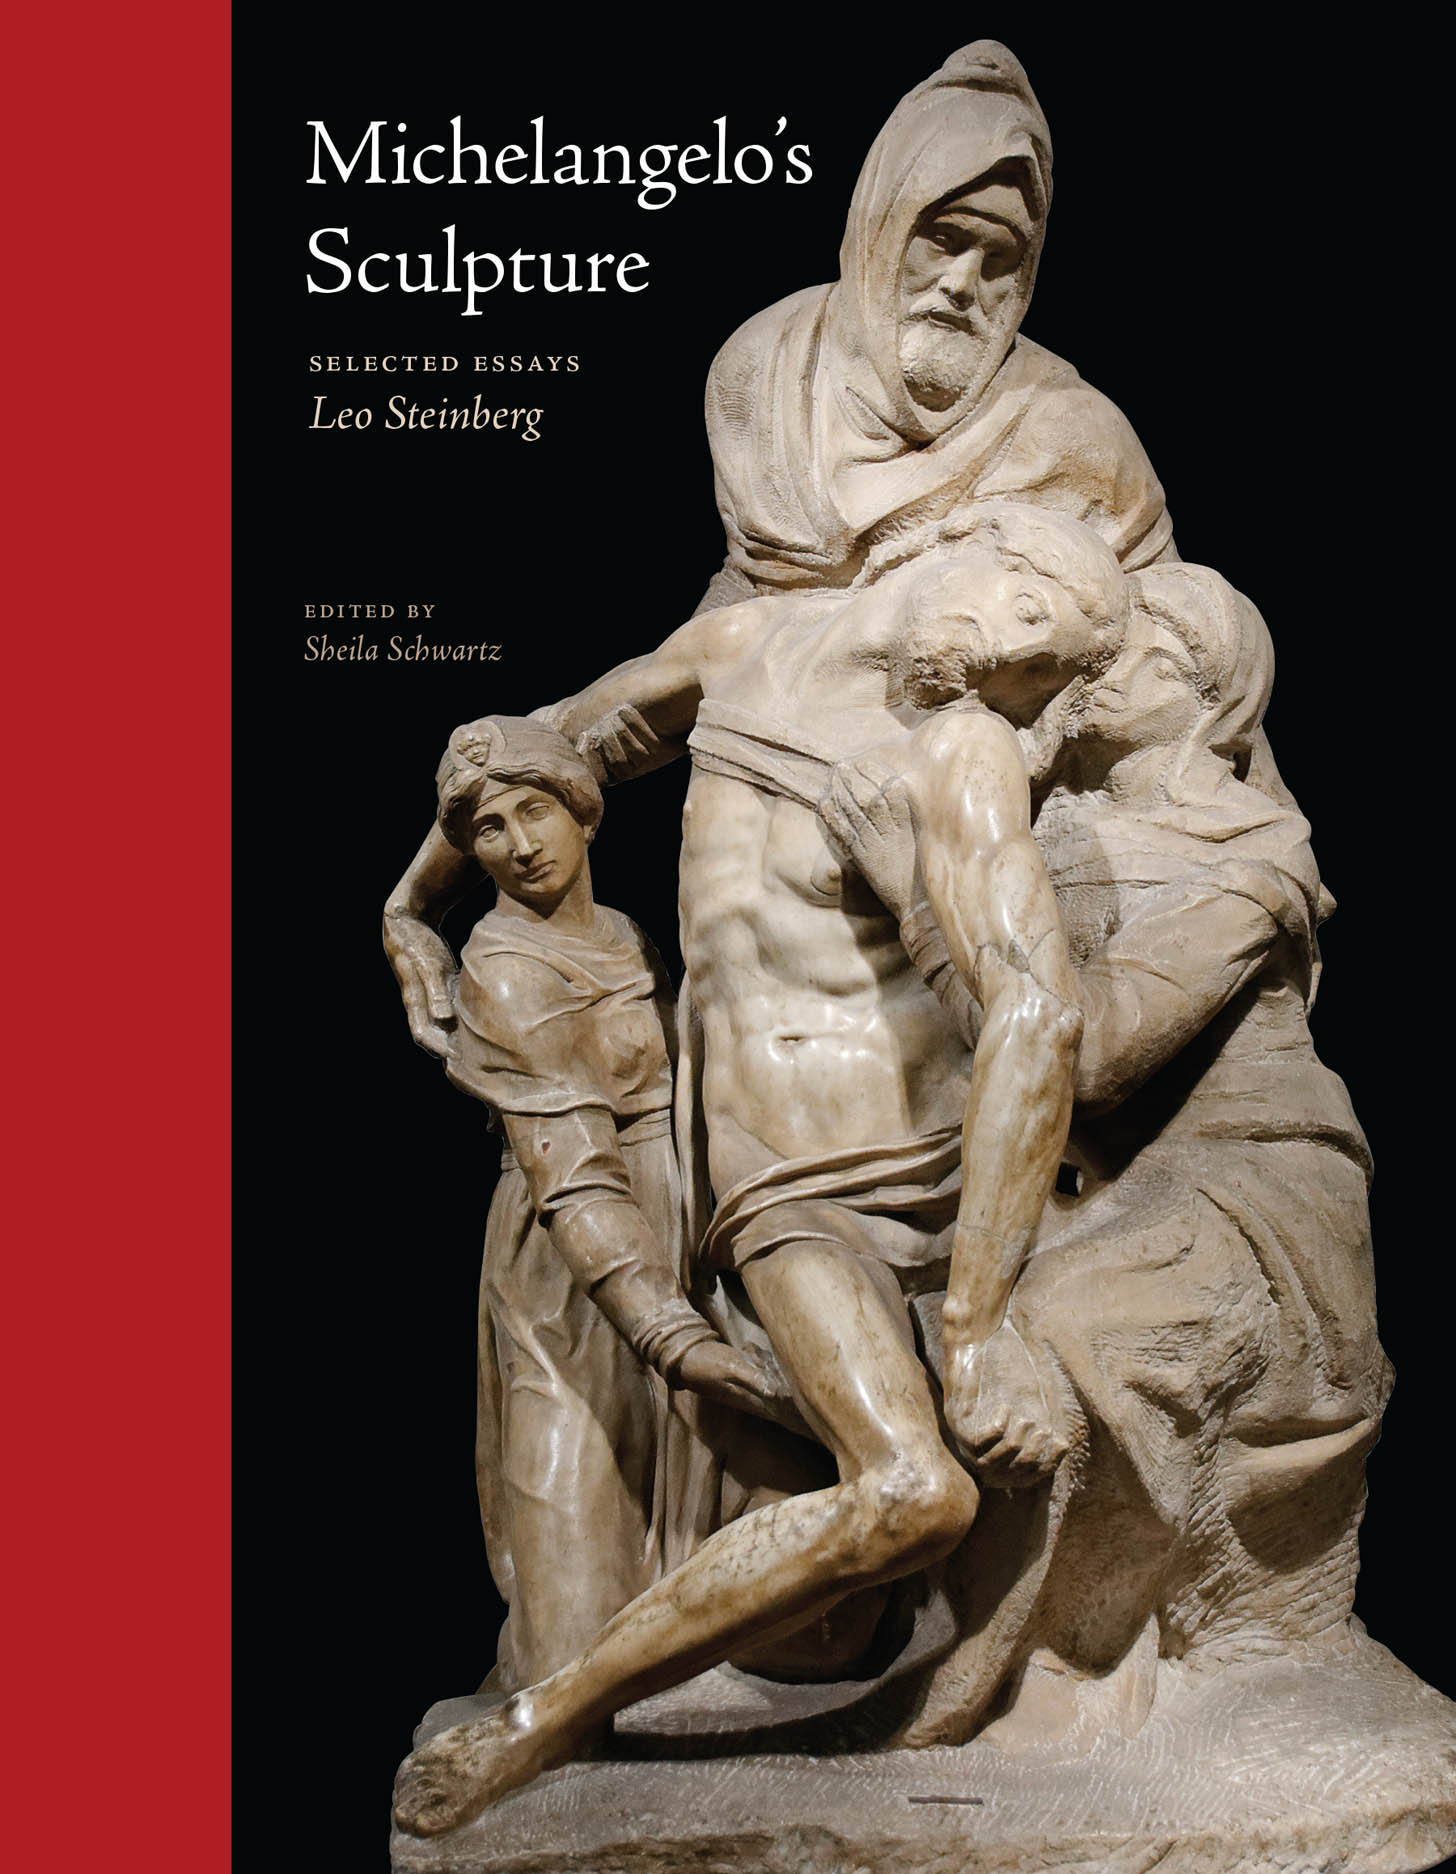 Michelangelo's Sculpture: Selected Essays